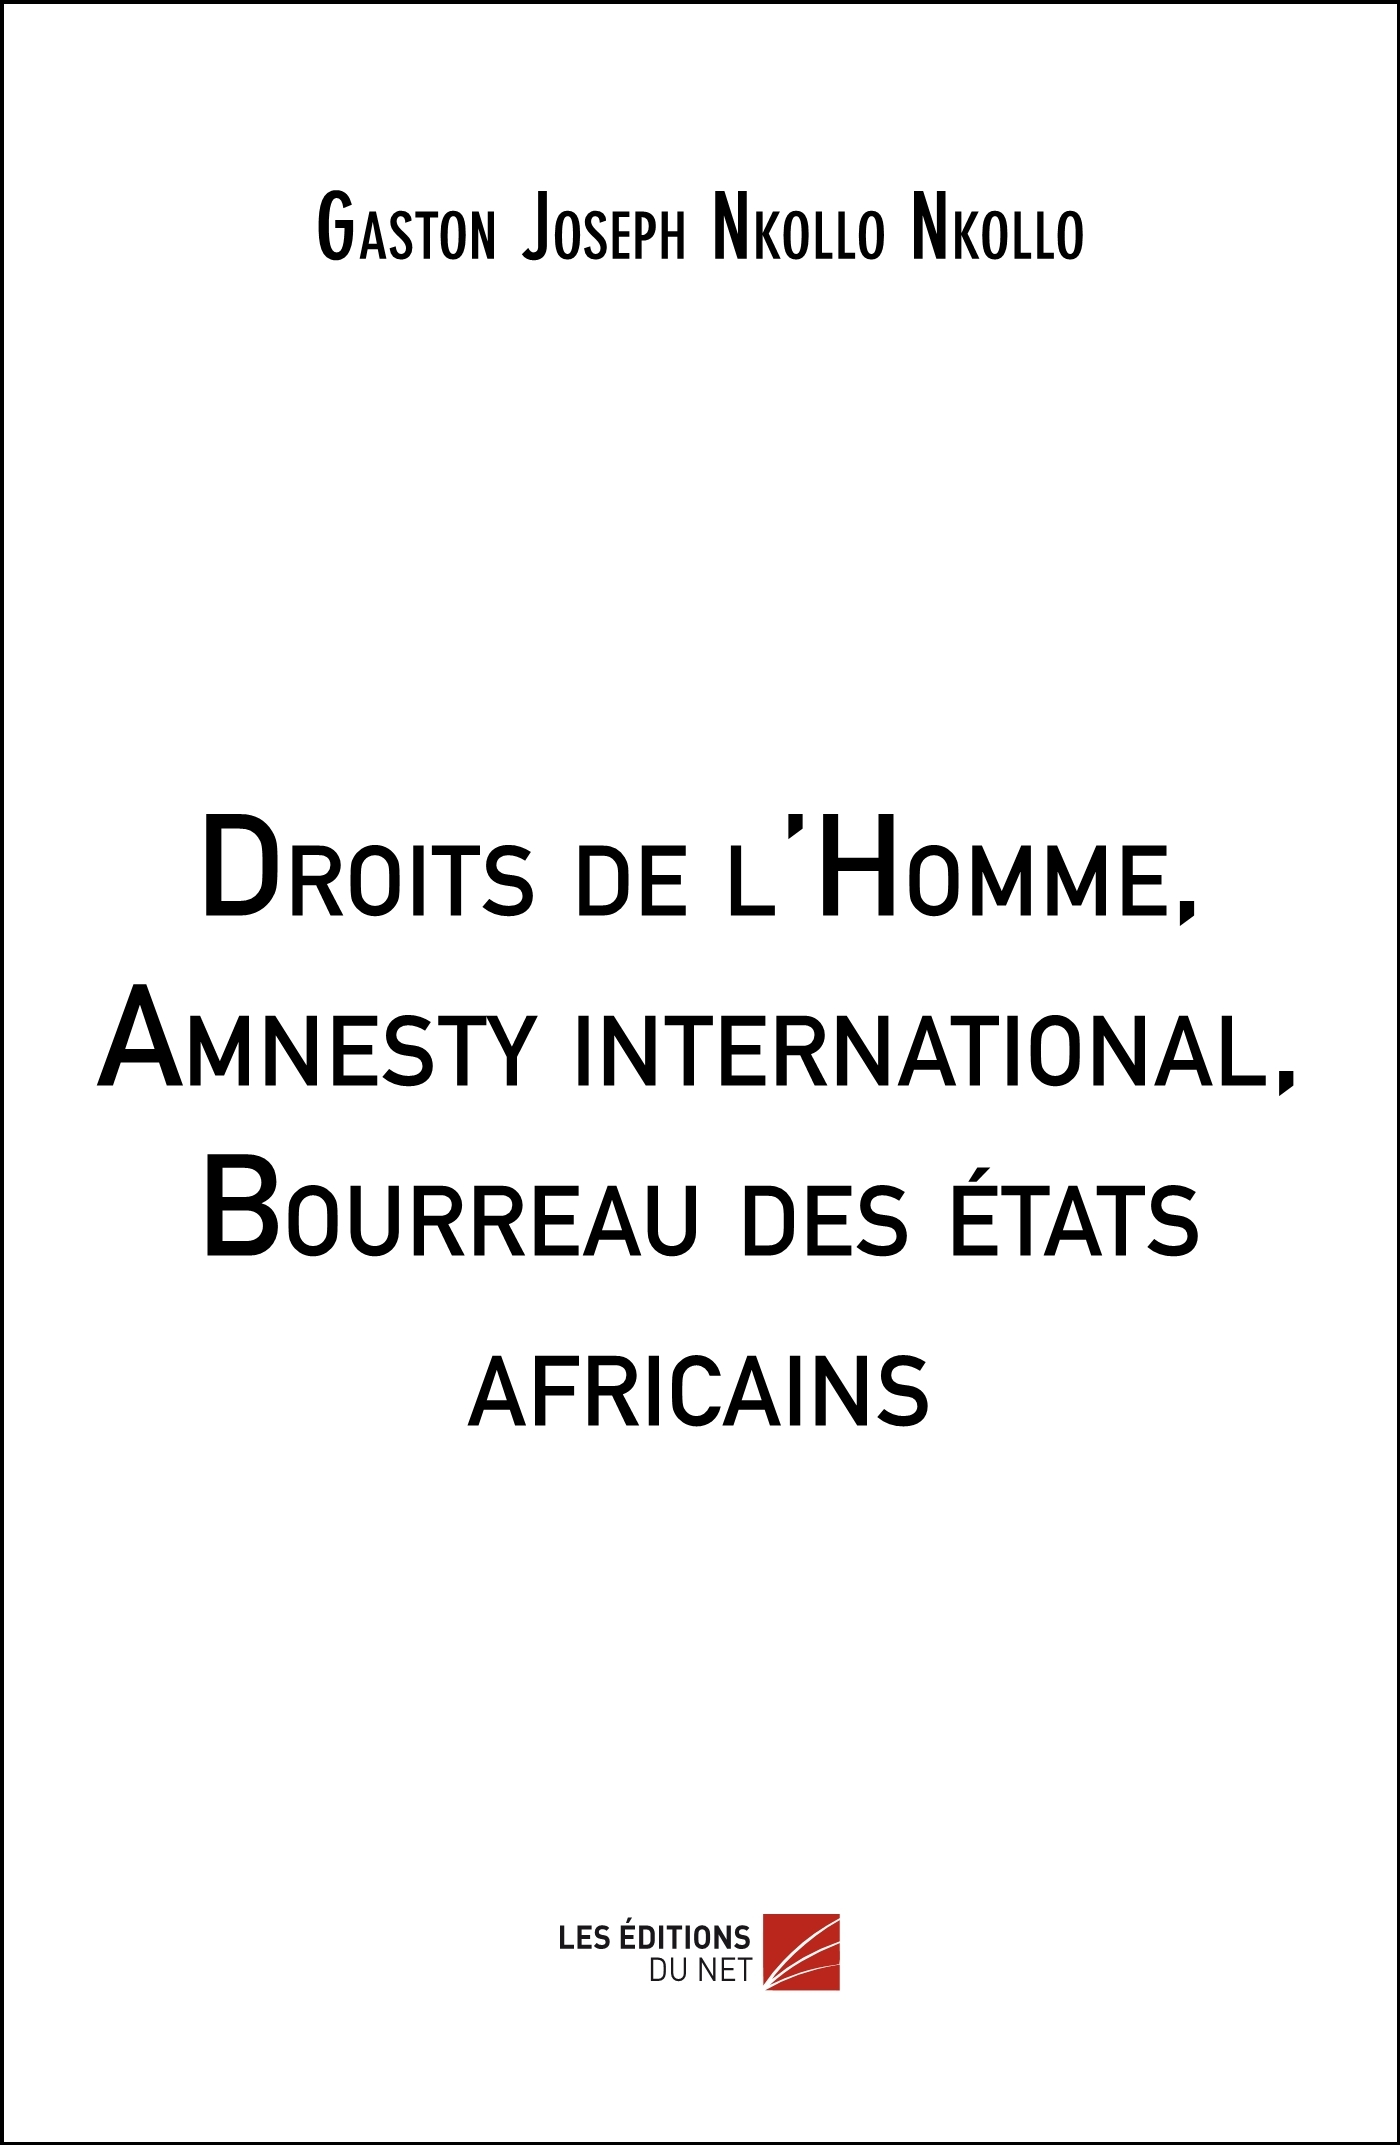 DROITS DE L'HOMME, AMNESTY INTERNATIONAL, BOURREAU DES ETATS AFRICAINS